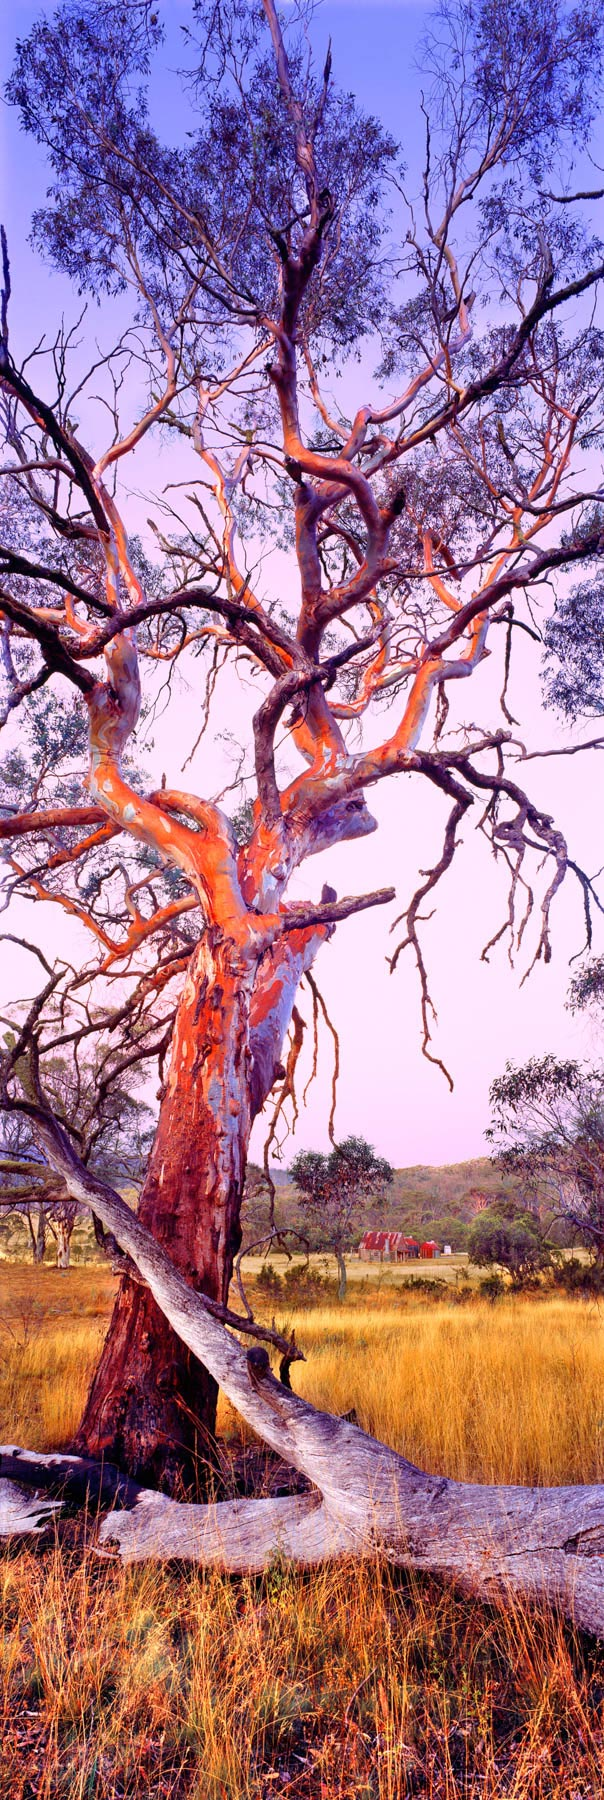 The rust red bark of a eucalypts aglow in a pastel sunset, NSW, Australia.